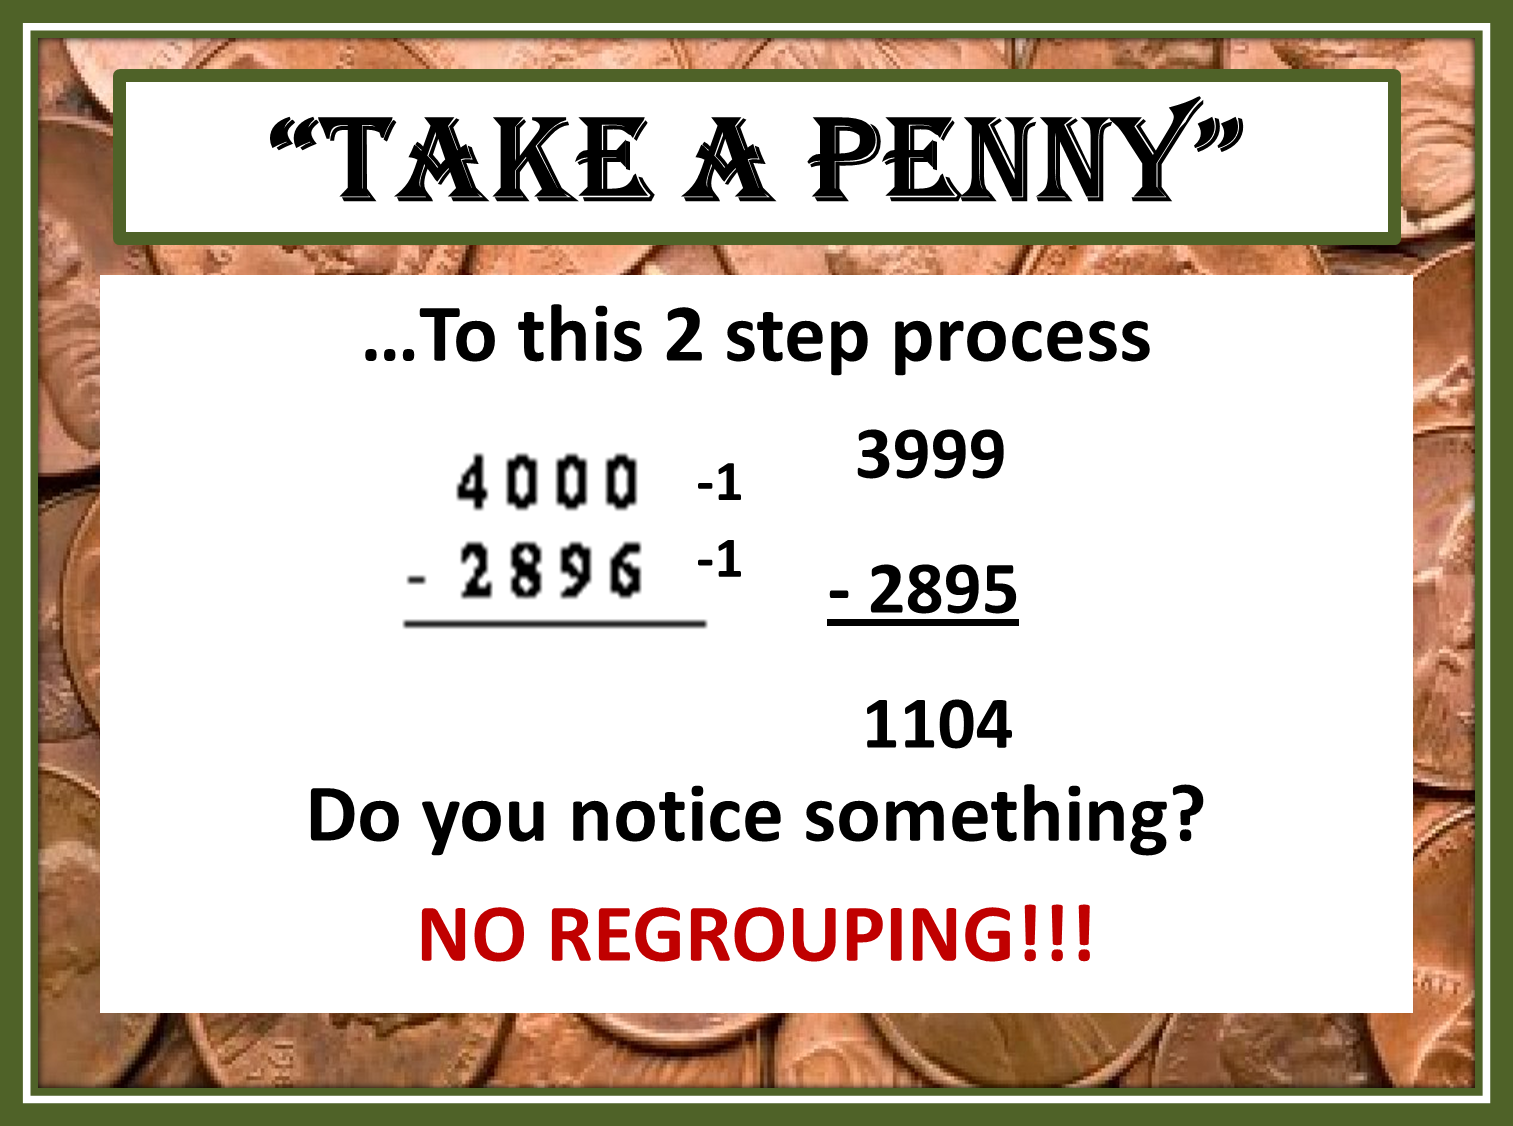 worksheet Subtraction Across Zeros tricks of the teaching trade take a penny and regrouping out it works every time no matter how many zeros you have reason is quite simple when are subtracting two nu